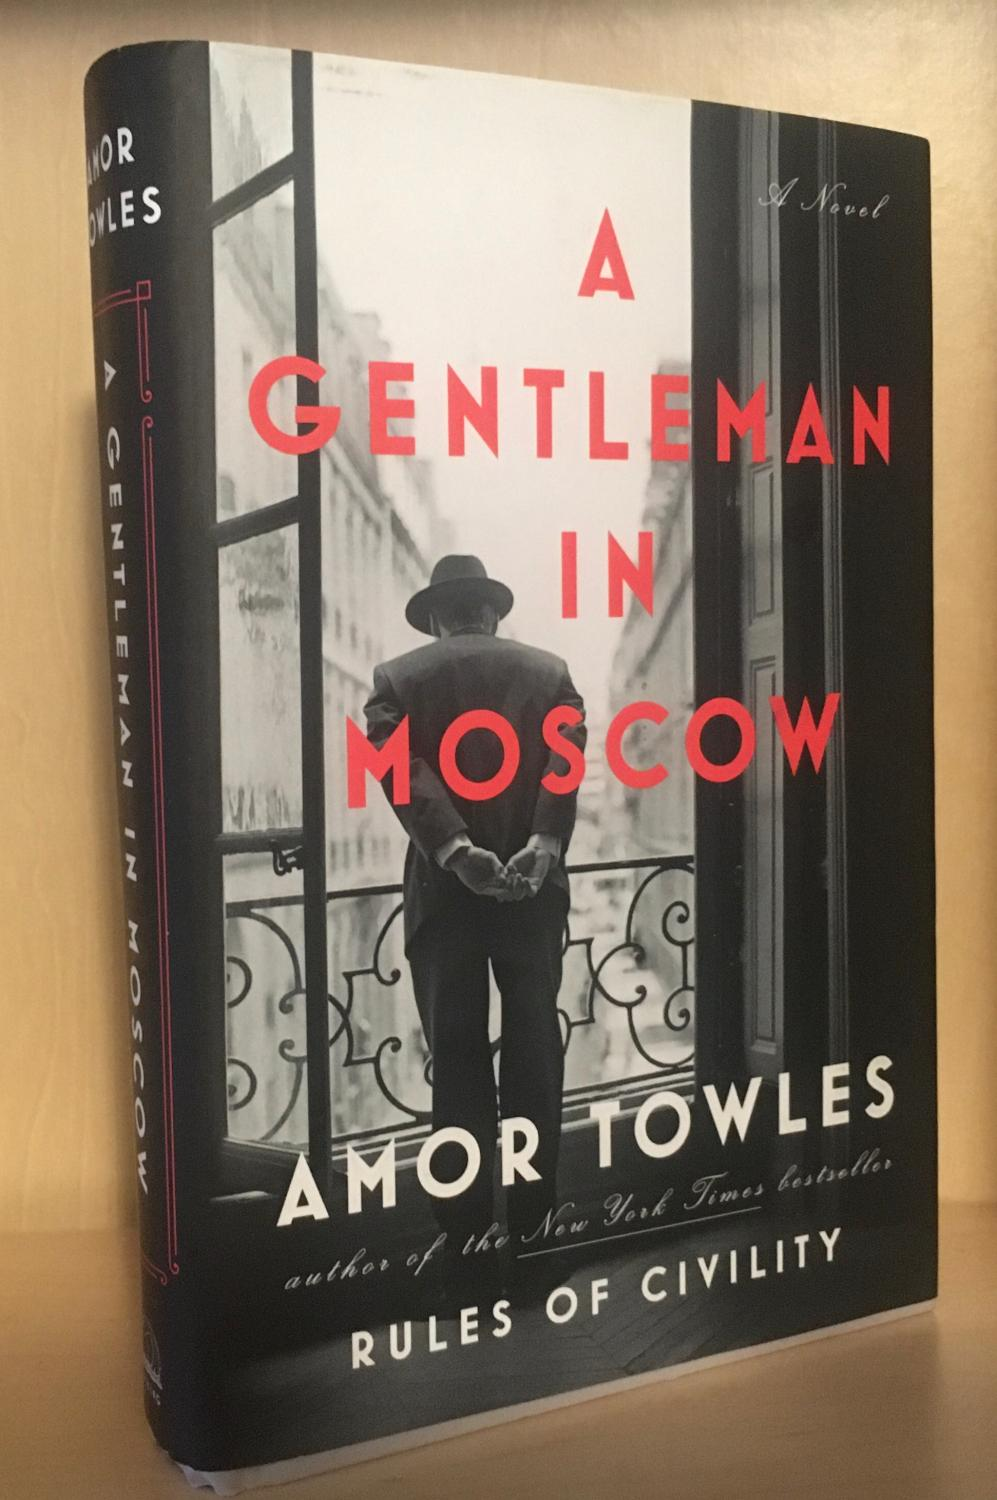 A Gentleman In Moscow Towles, Amor [Very Good] [Hardcover] A lightly used later printing (23rd.) with the owners name penned on the first endpaper signed by the author on the title page.